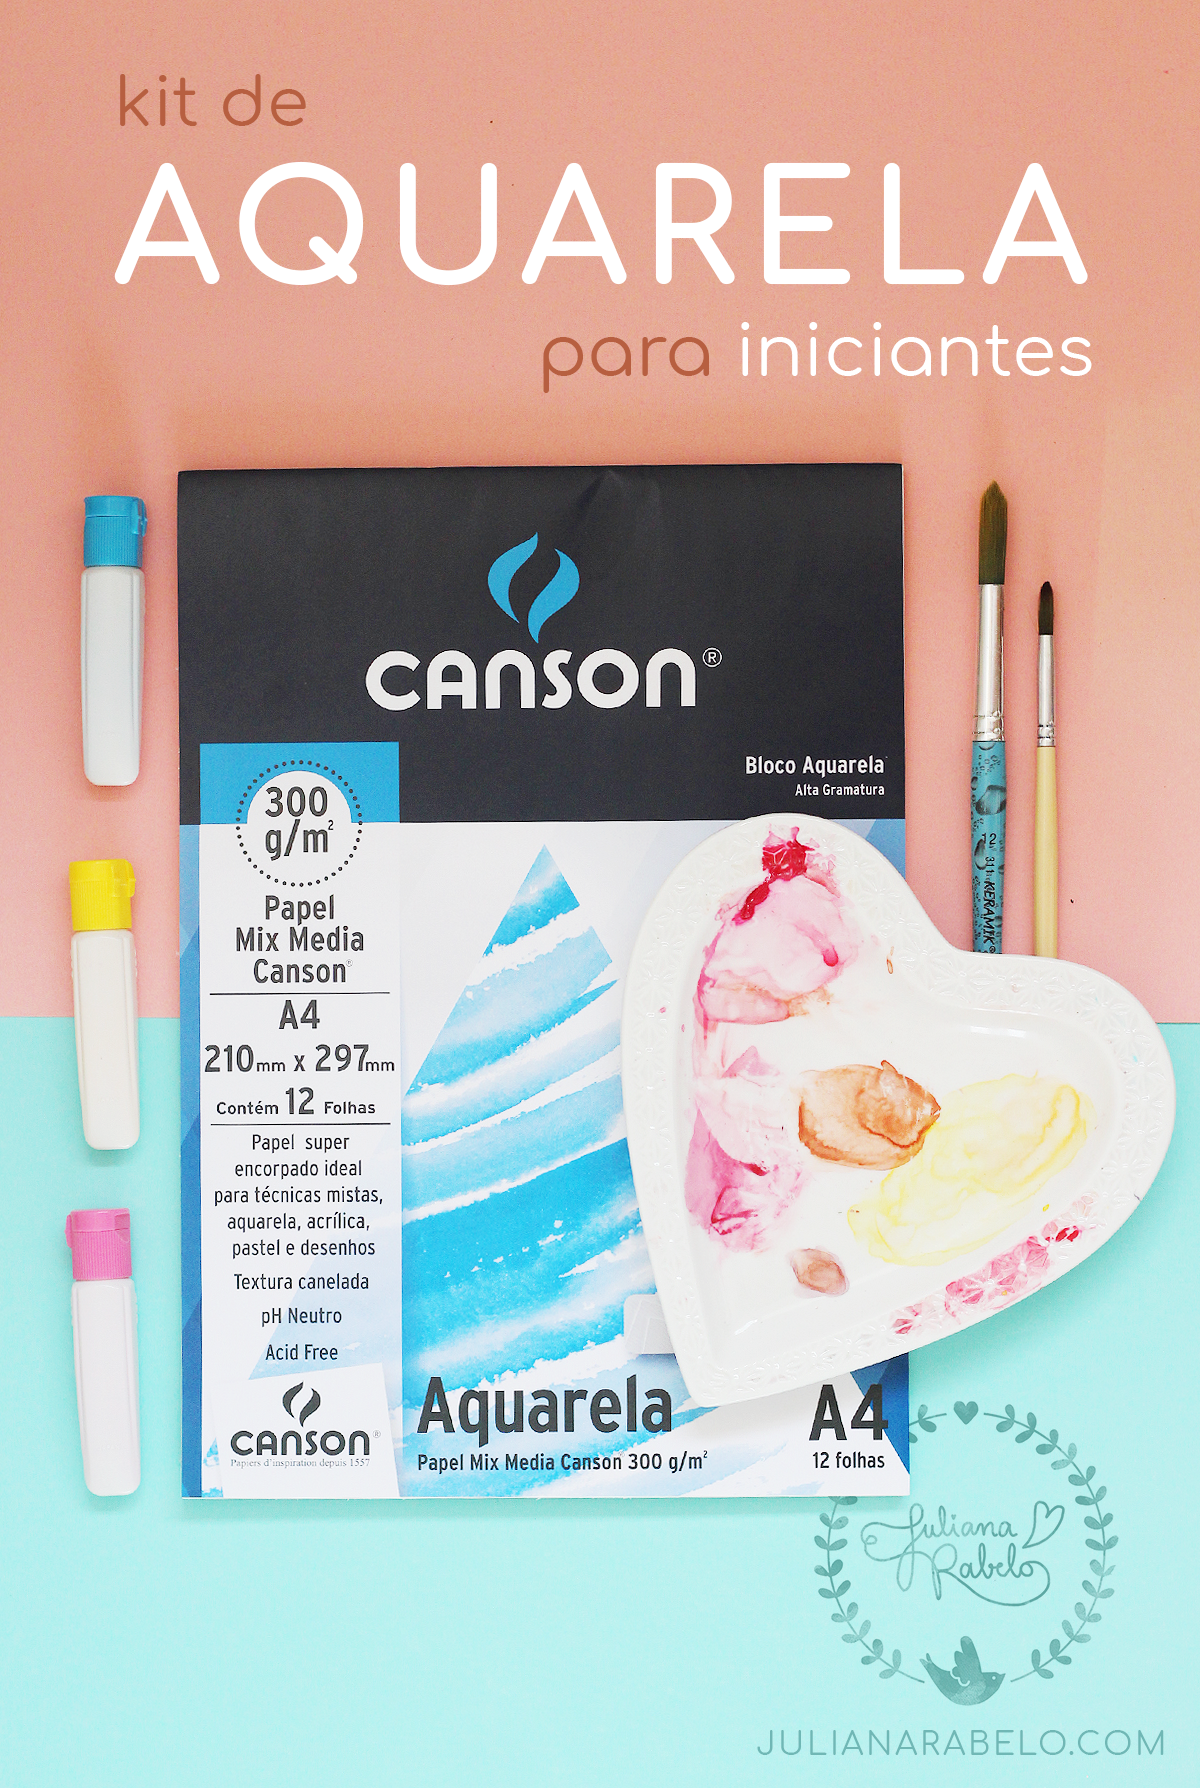 kit de aquarela para iniciantes - Juliana Rabelo